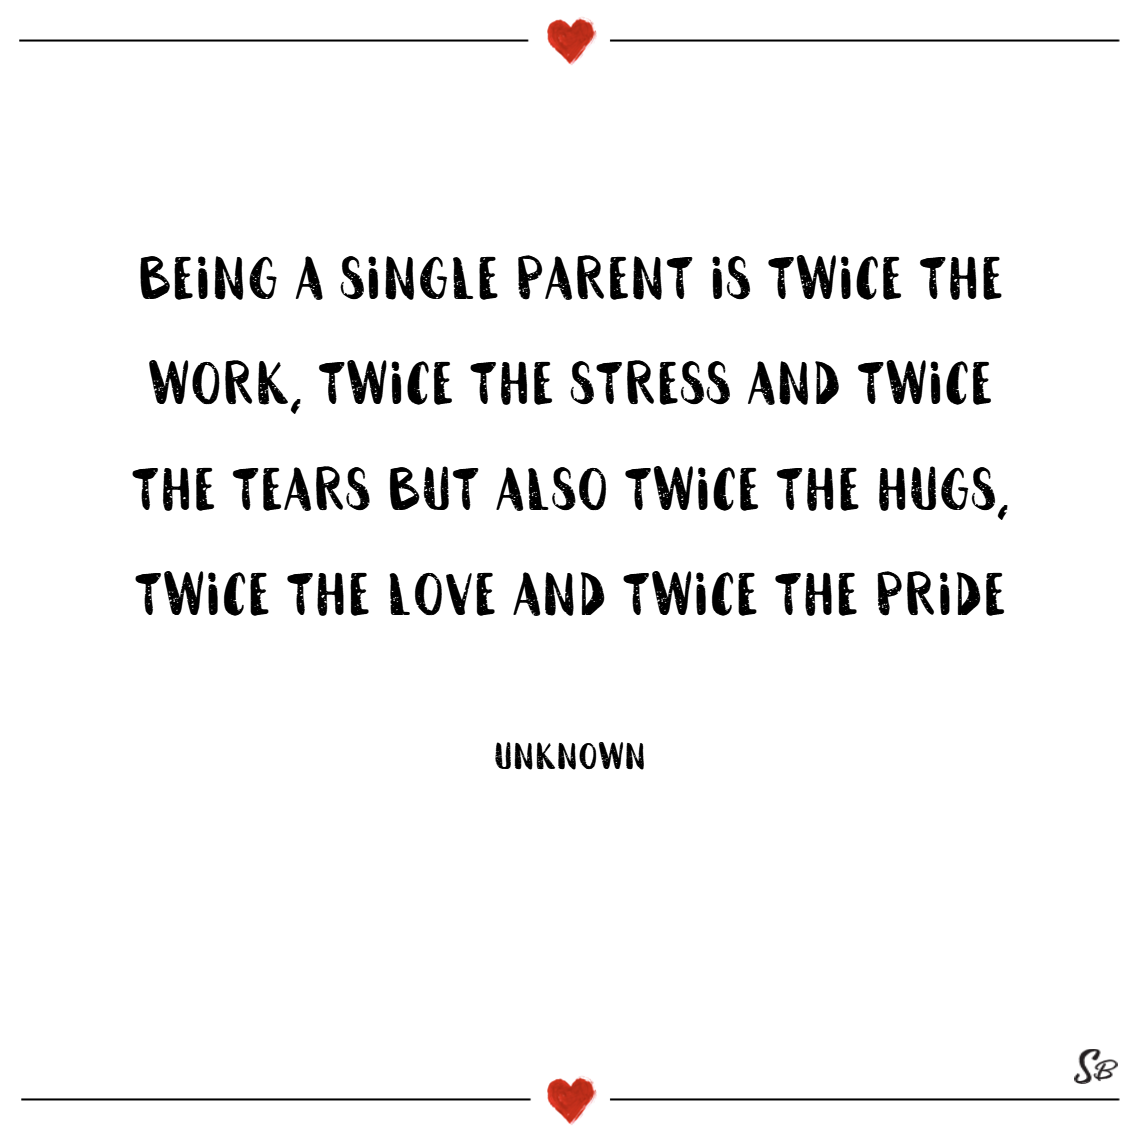 being a single parent is twice the work twice the stress and twice the tears